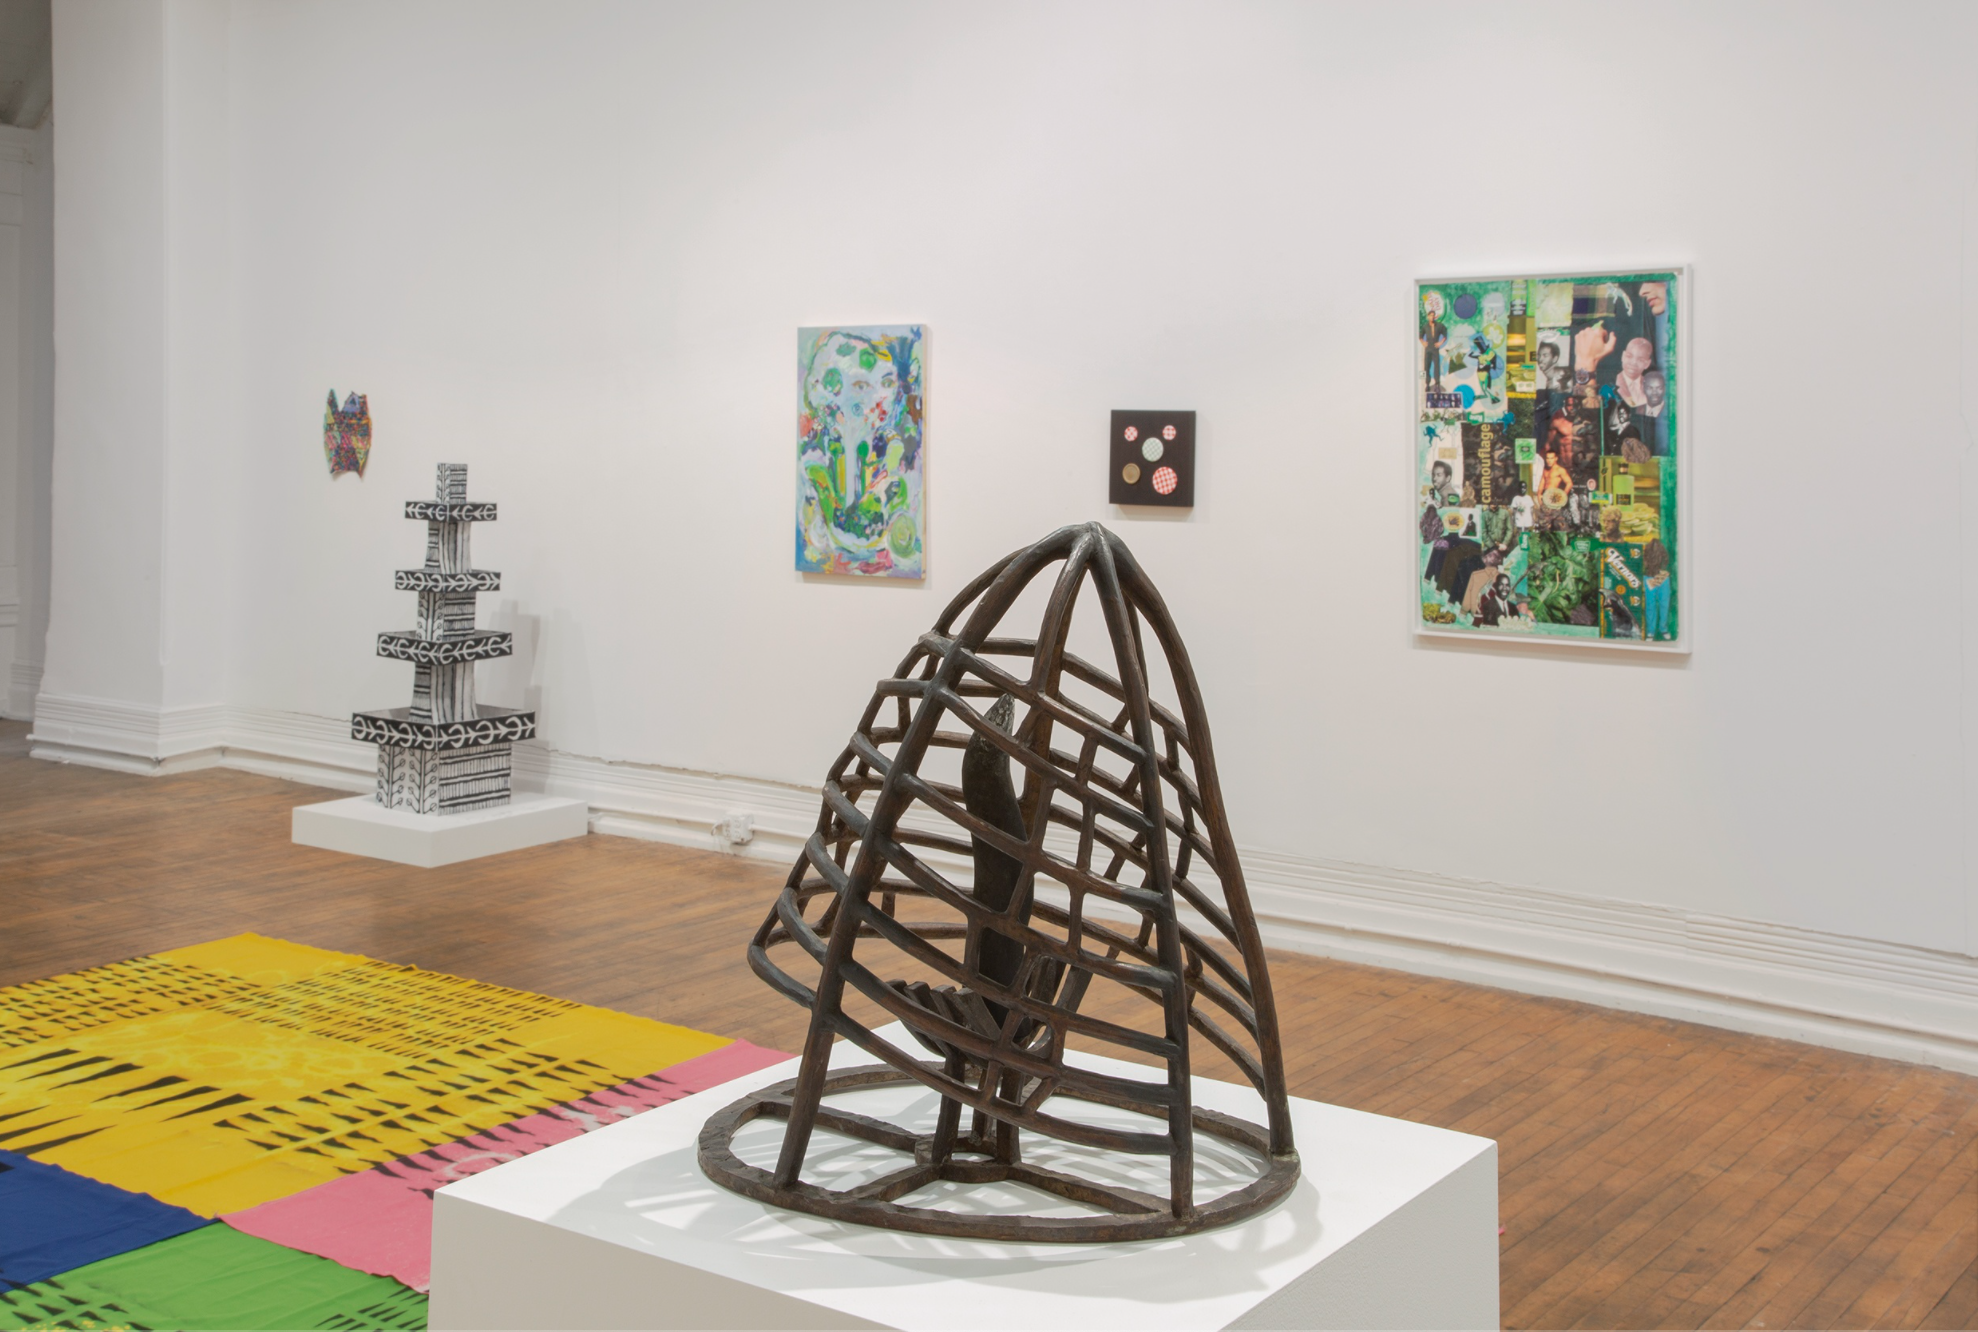 photo of the gallery space, in the foreground a cage sculpture